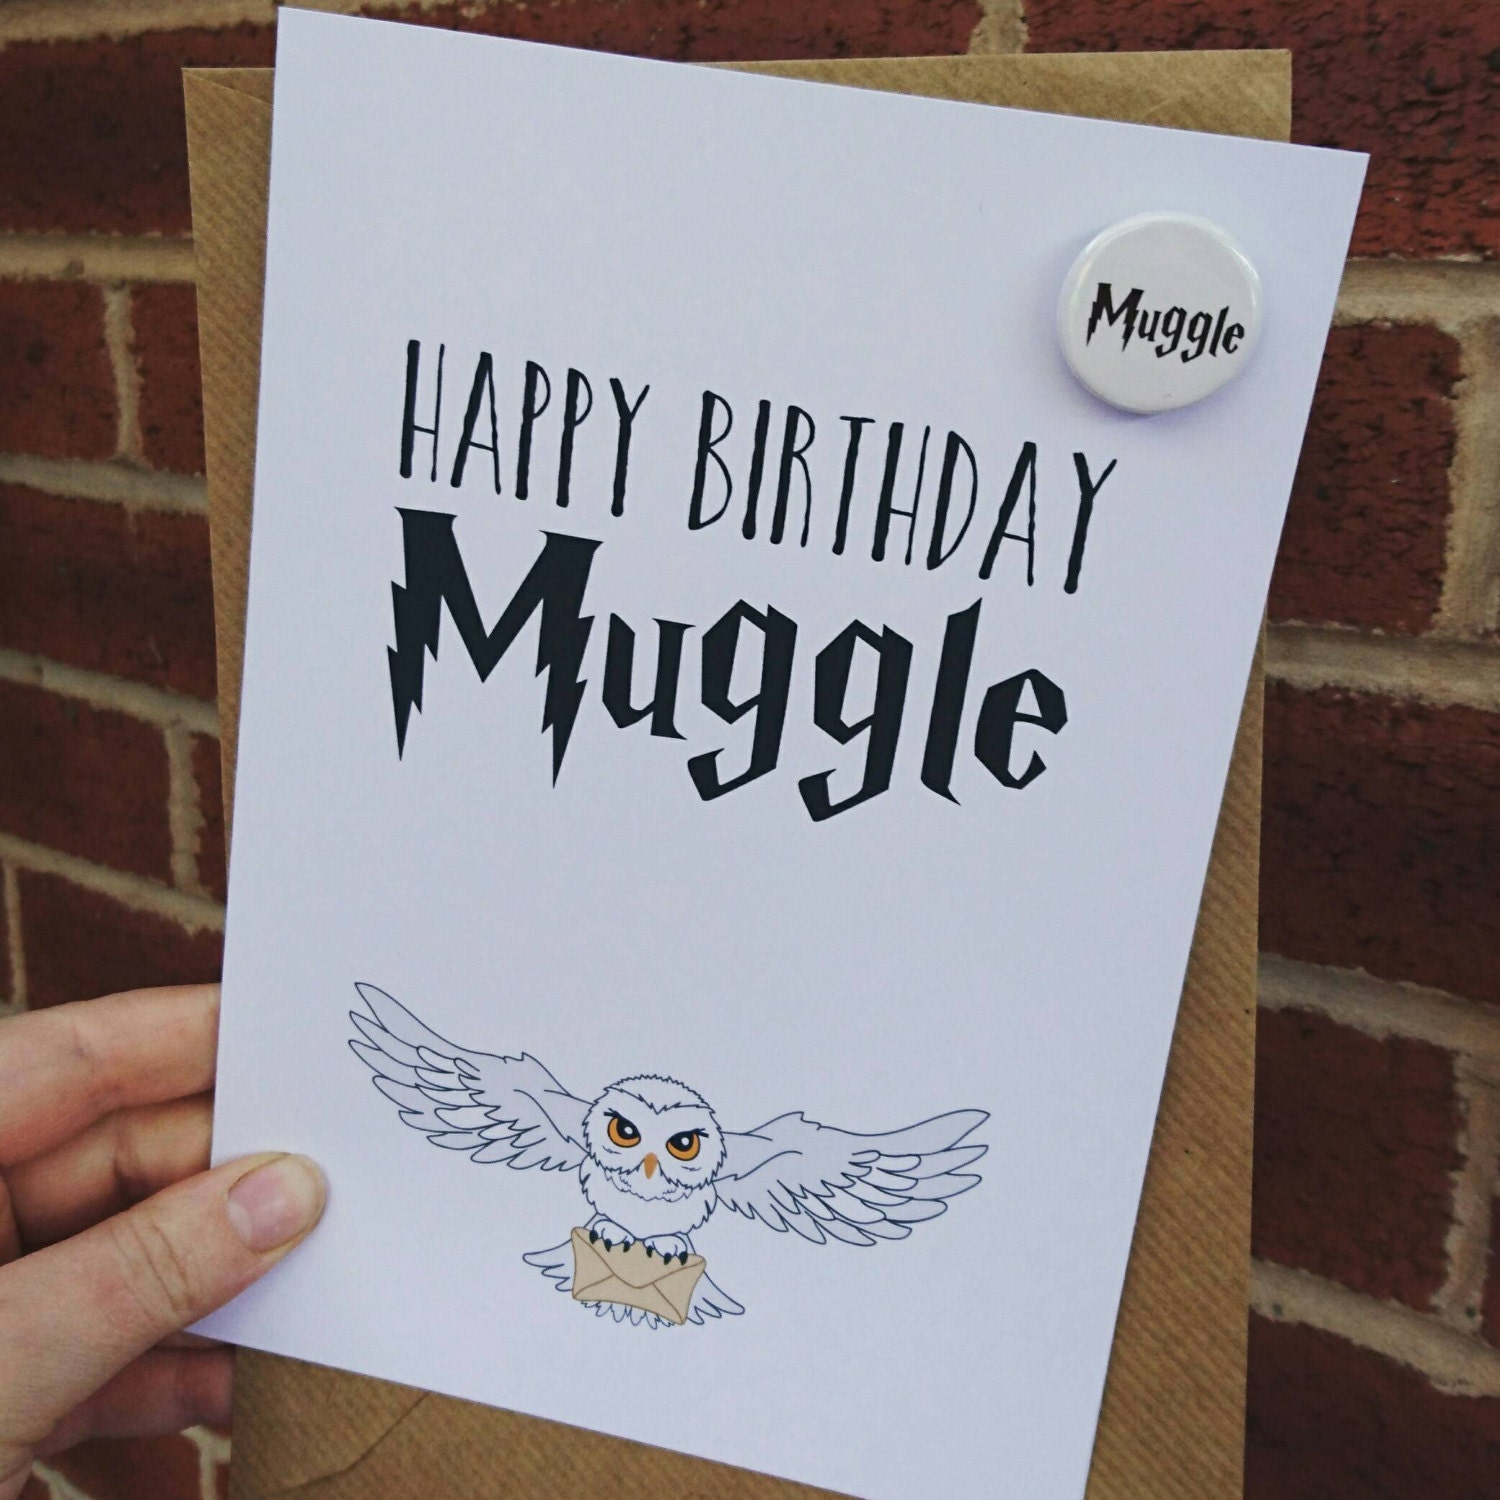 Harry Potter Fan Themed Birthday Card With Muggle Badge